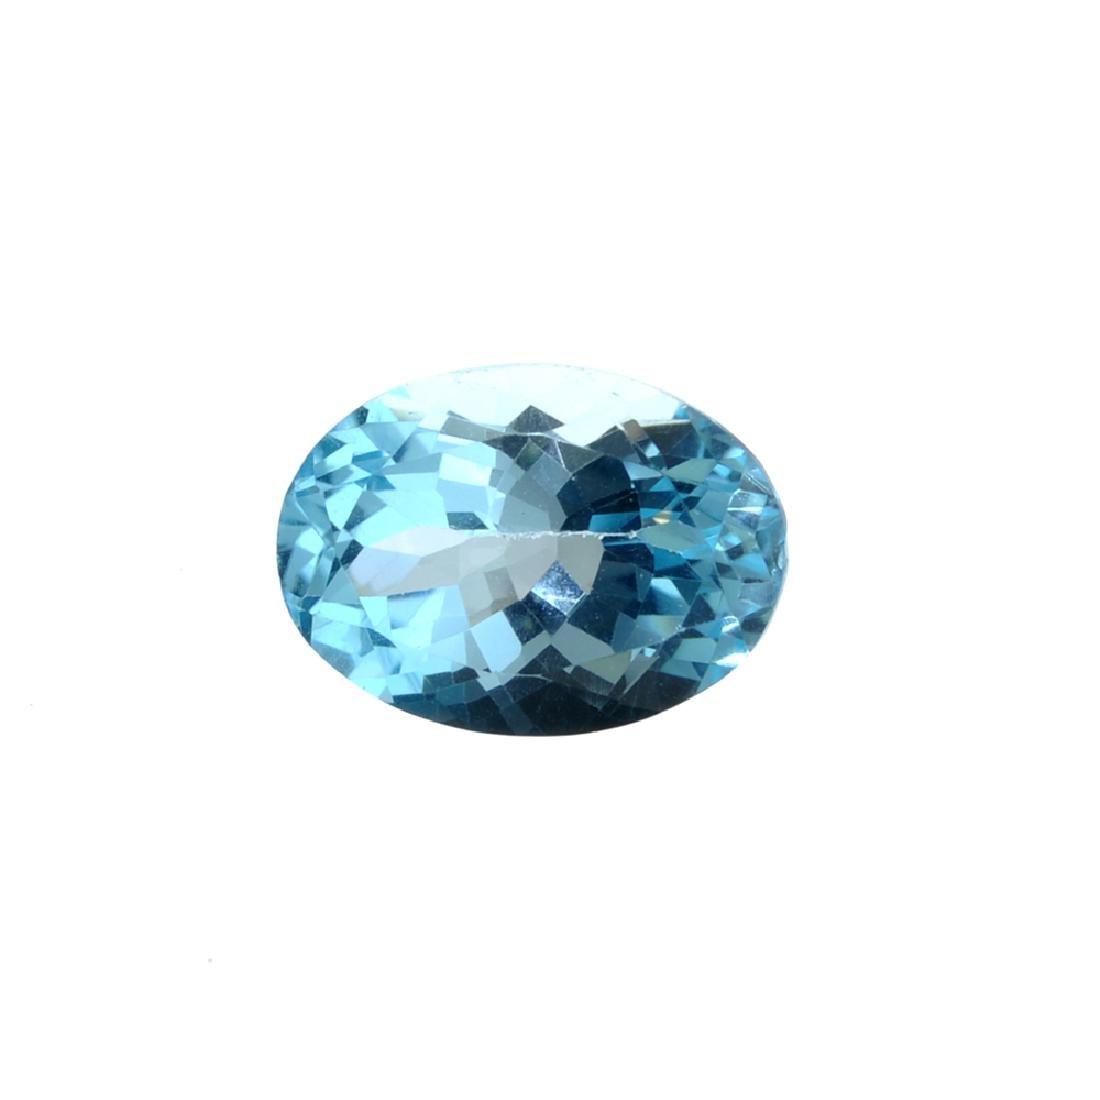 APP: 0.4k 13.27CT Oval Cut Blue Topaz Gemstone